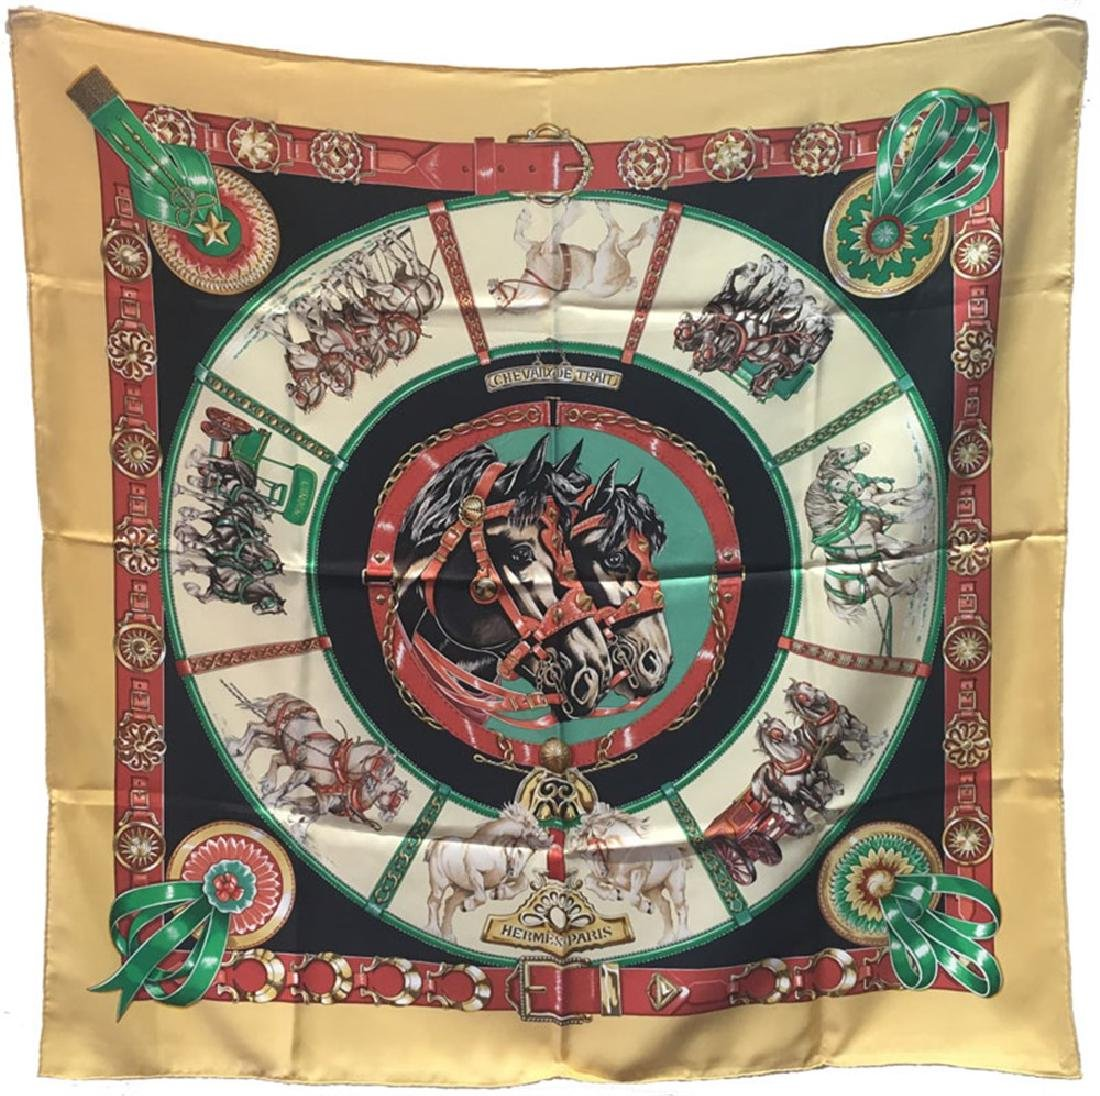 Hermes Vintage Chevaux de Trait Silk Scarf in Yellow